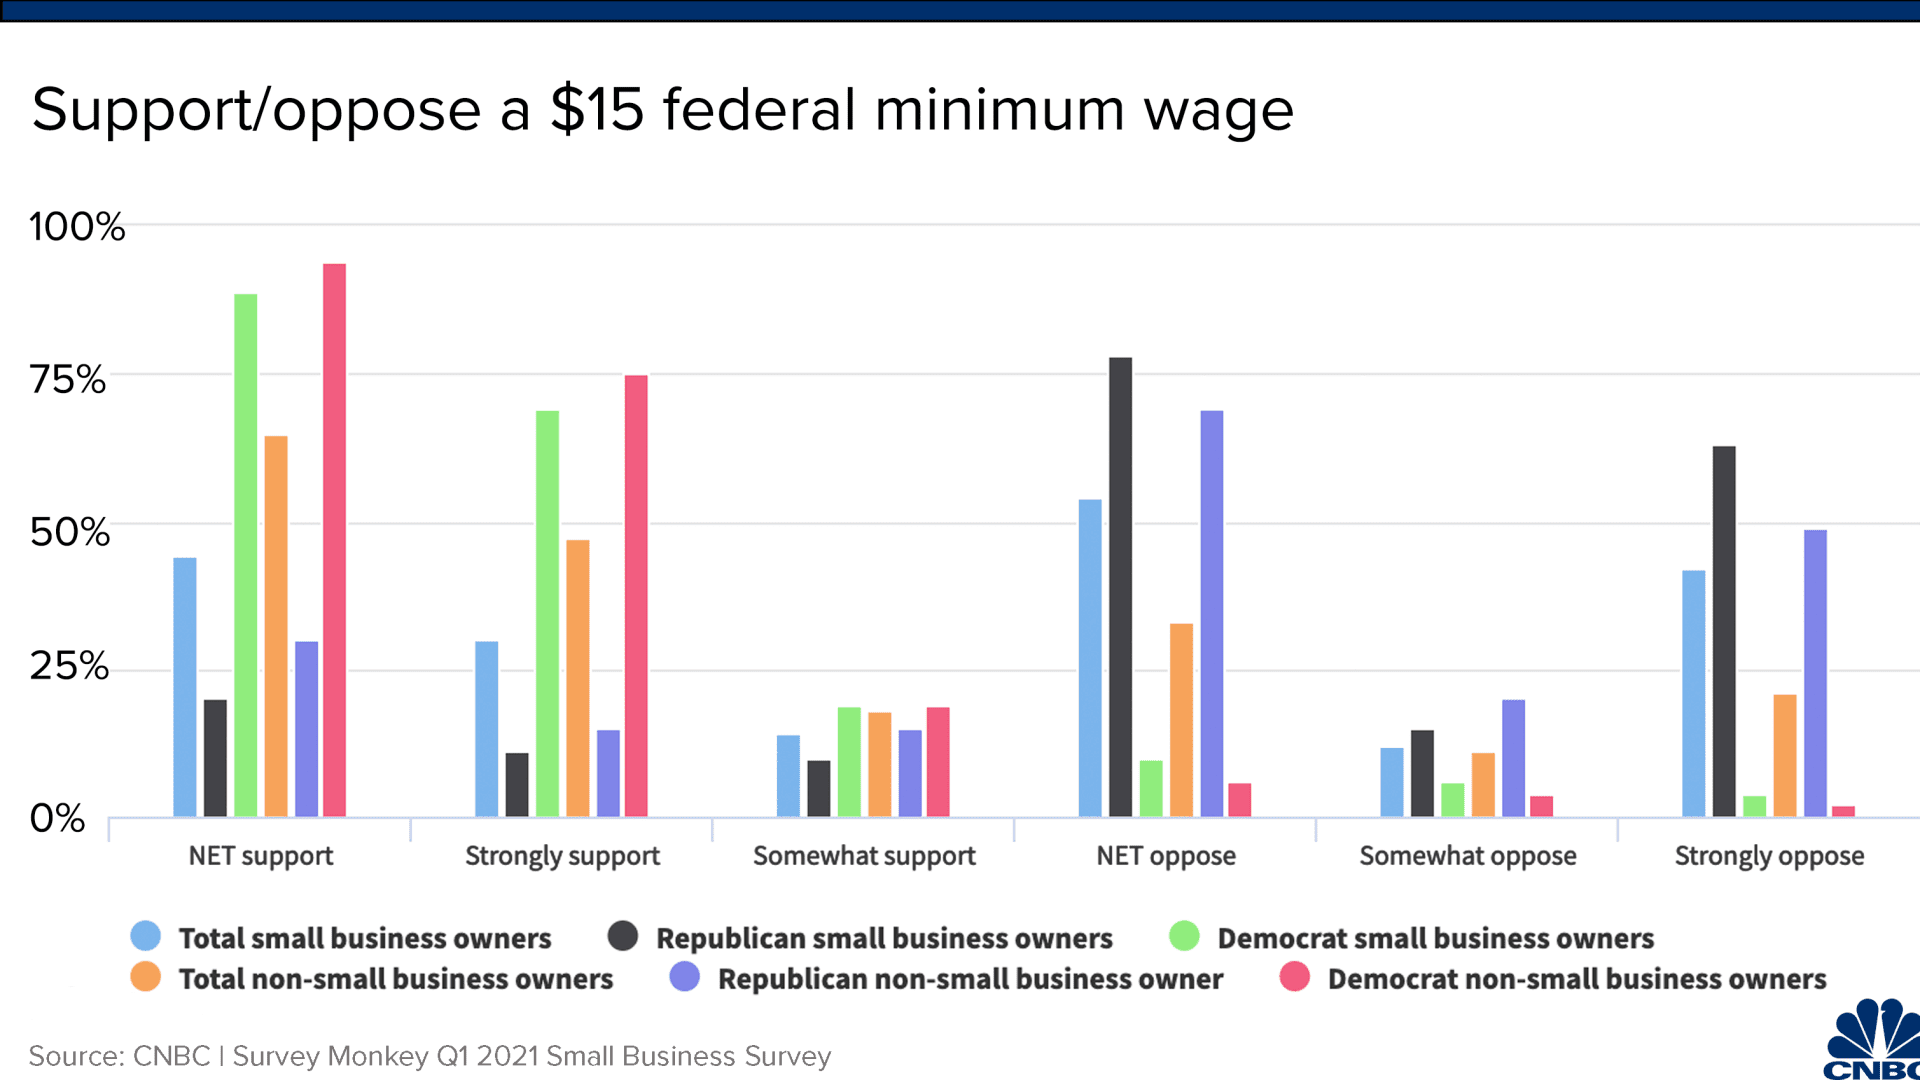 A survey of small business owner views on raising the federal minimum wage to $15/hour reveals a partisan split on Main Street over the issue.